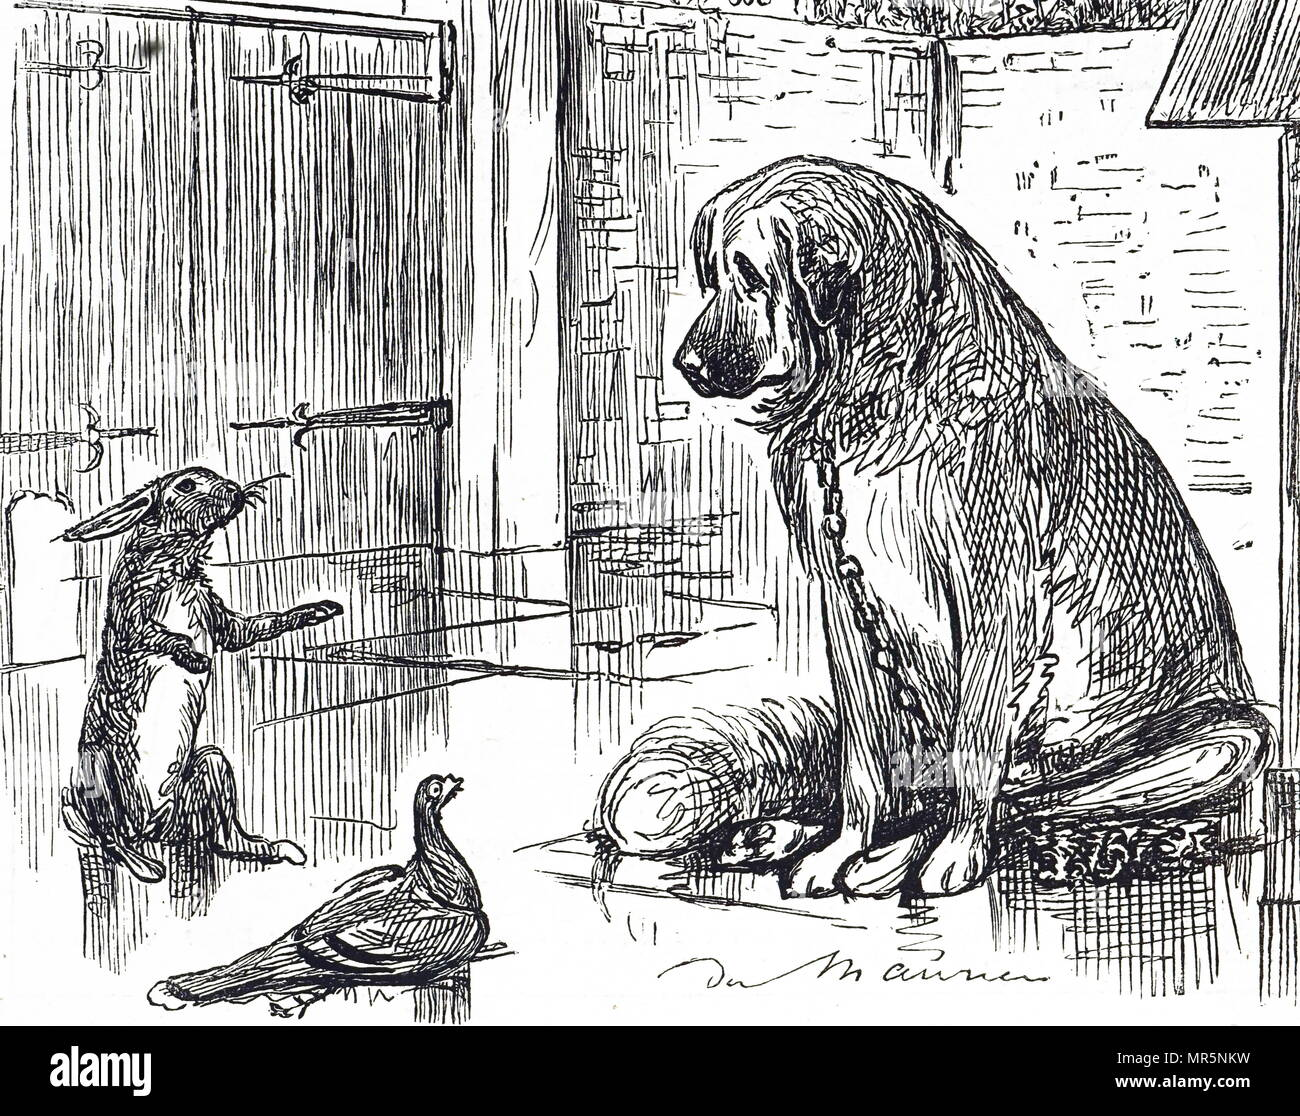 Cartoon commenting on the Cruelty to Animals Act 1876 - a plea for the rest of the animal kingdom to be given as much consideration as the animals used  in vivisection experiments. Illustrated by George du Maurier (1834-1896) a Franco-British cartoonist and author. Dated 19th century - Stock Image